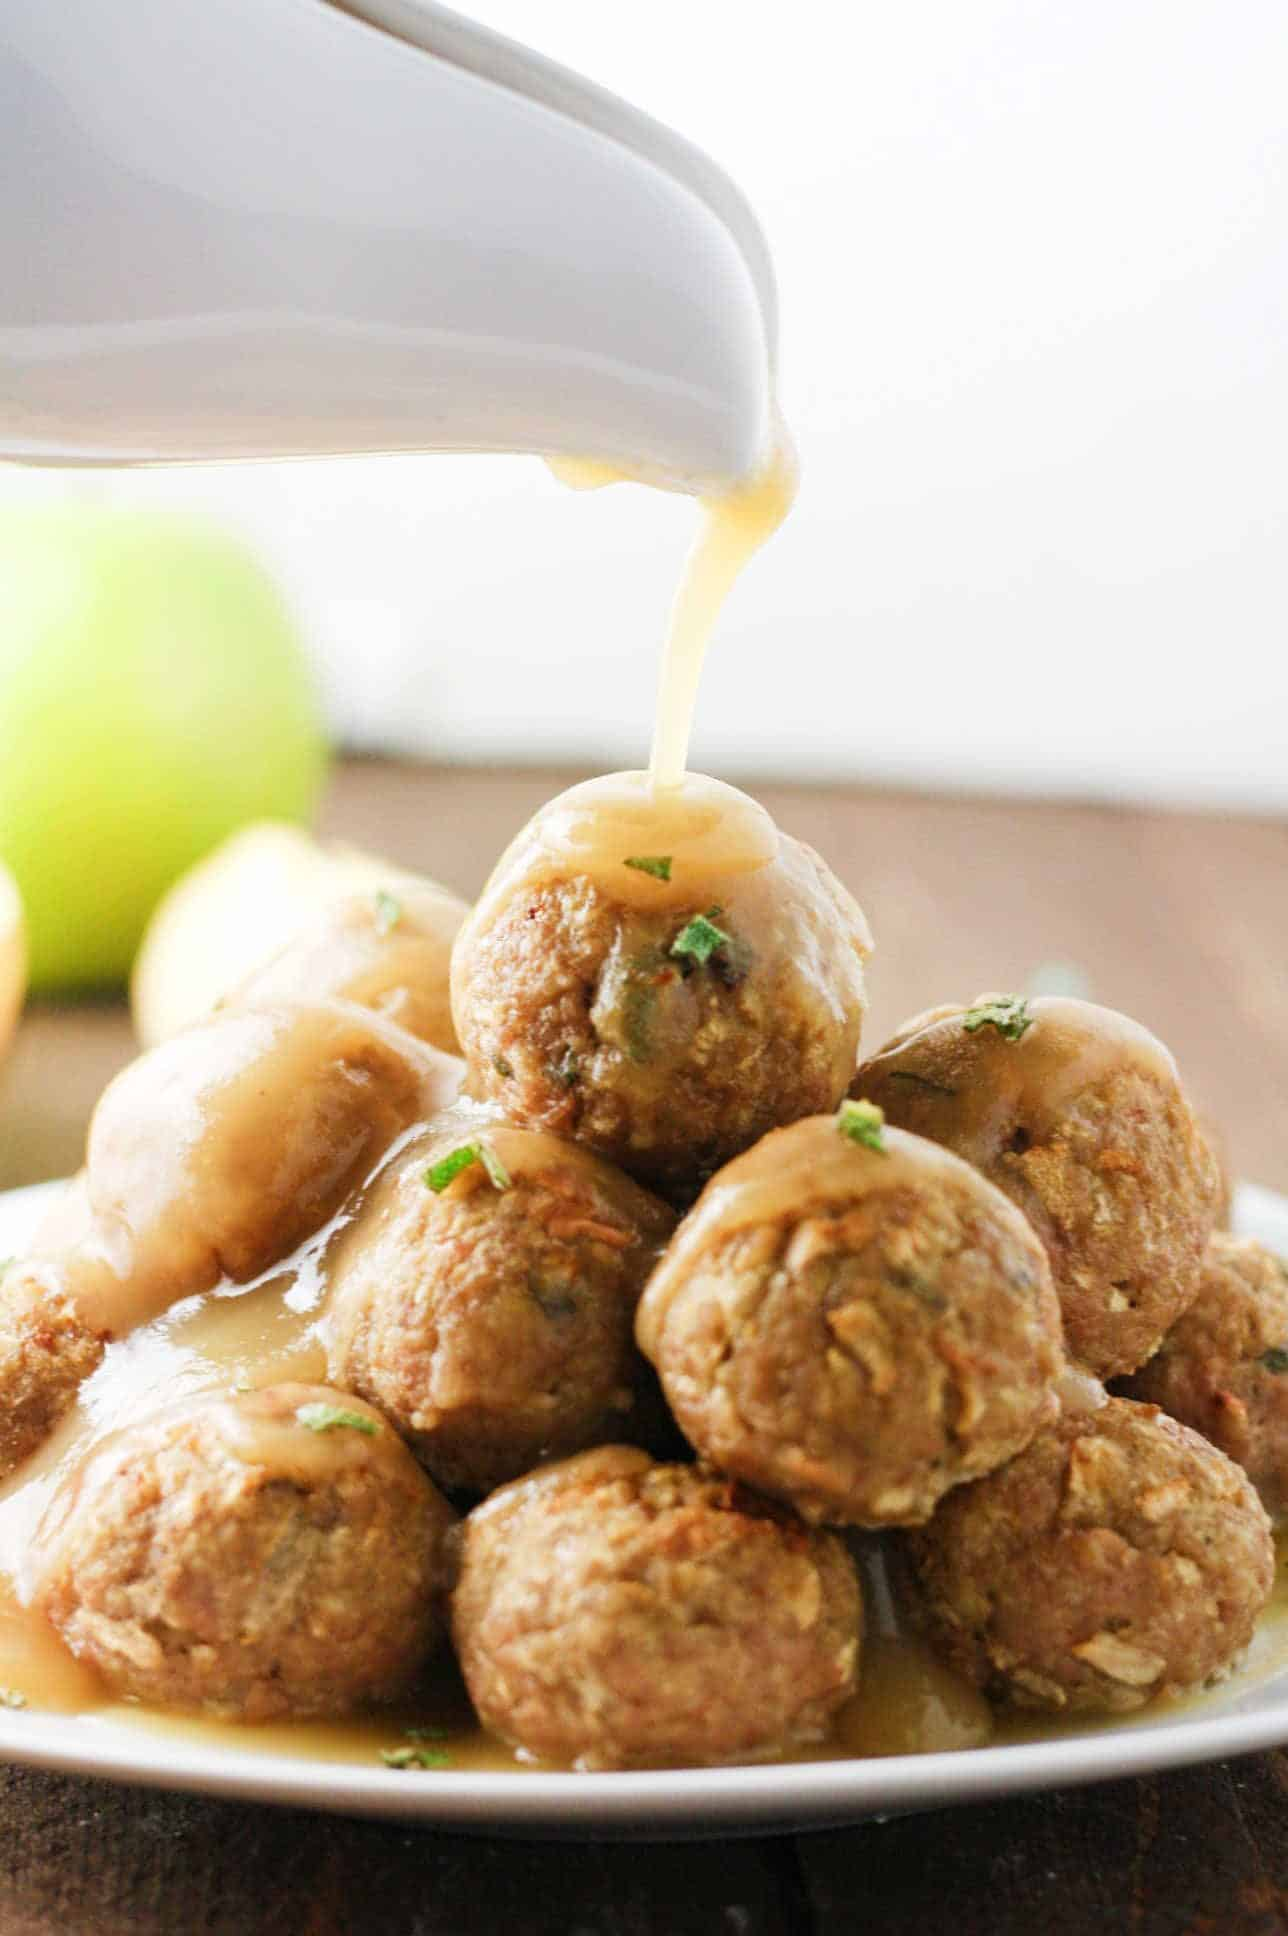 Sage and Apple Turkey Meatballs - deliciously flavorsome meatballs made with lean ground turkey, fresh apple and sage to create the perfect harmony of fall flavors! Perfect for game-day or potluck. www.itscheatdayeveryday.com